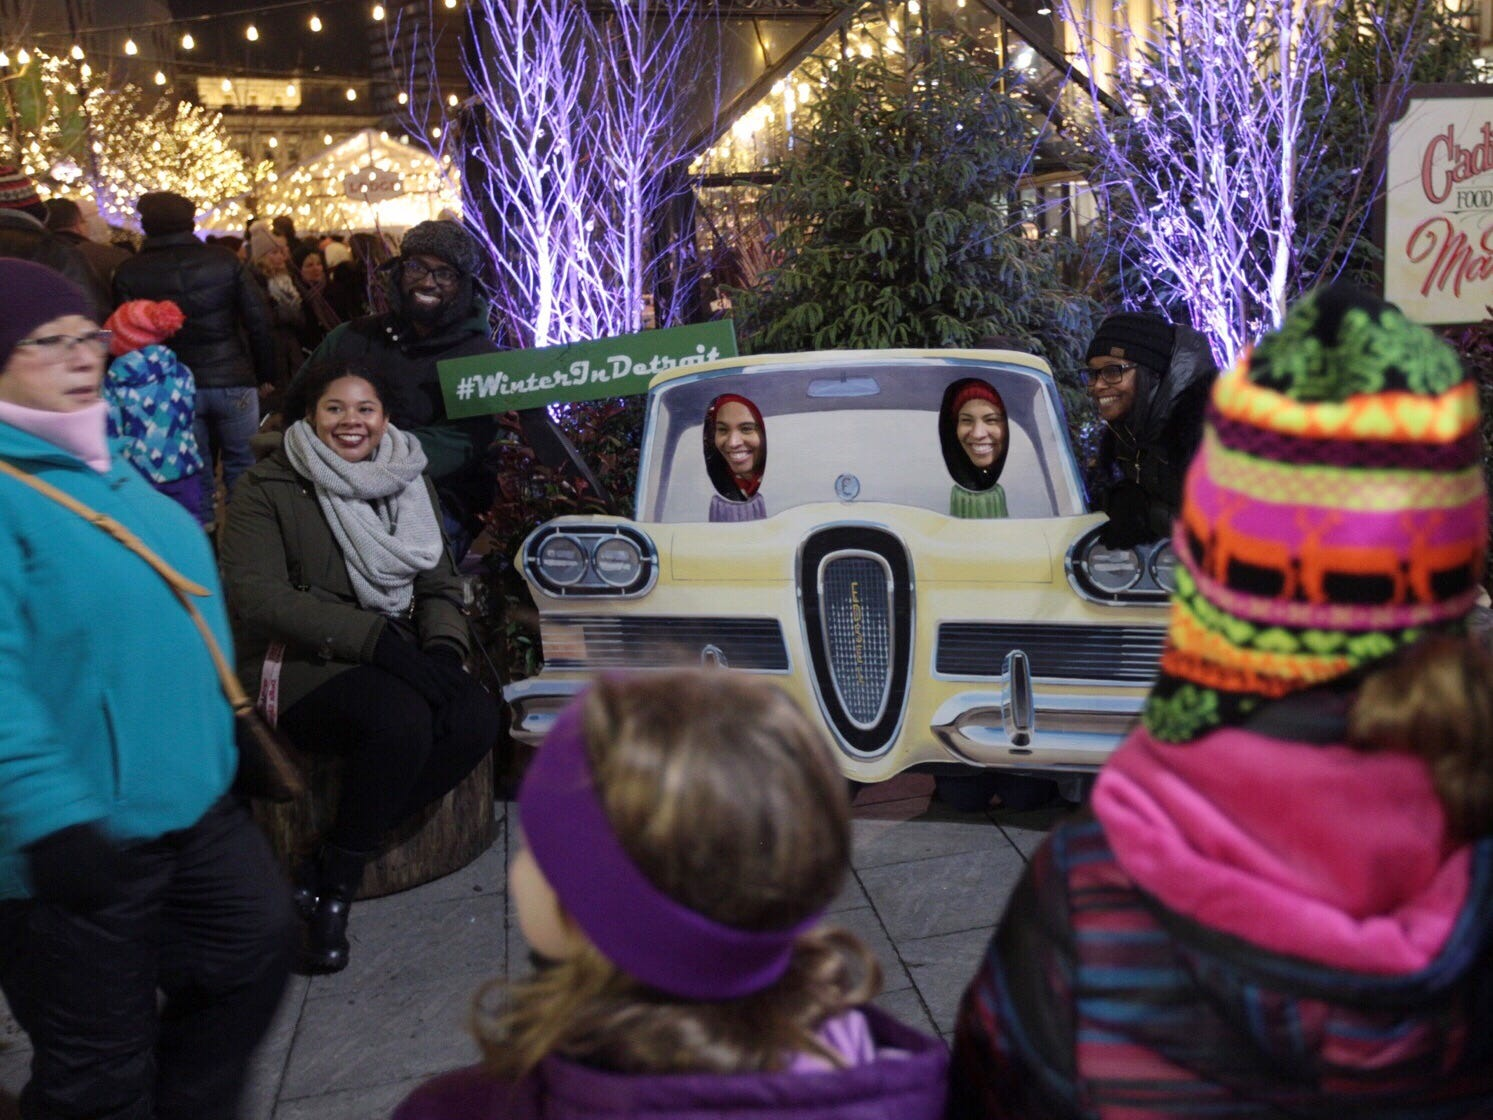 People pose for a photo in cutouts during the annual tree lighting event at Campus Martius Park in downtown Detroit on Friday, November 16, 2018.